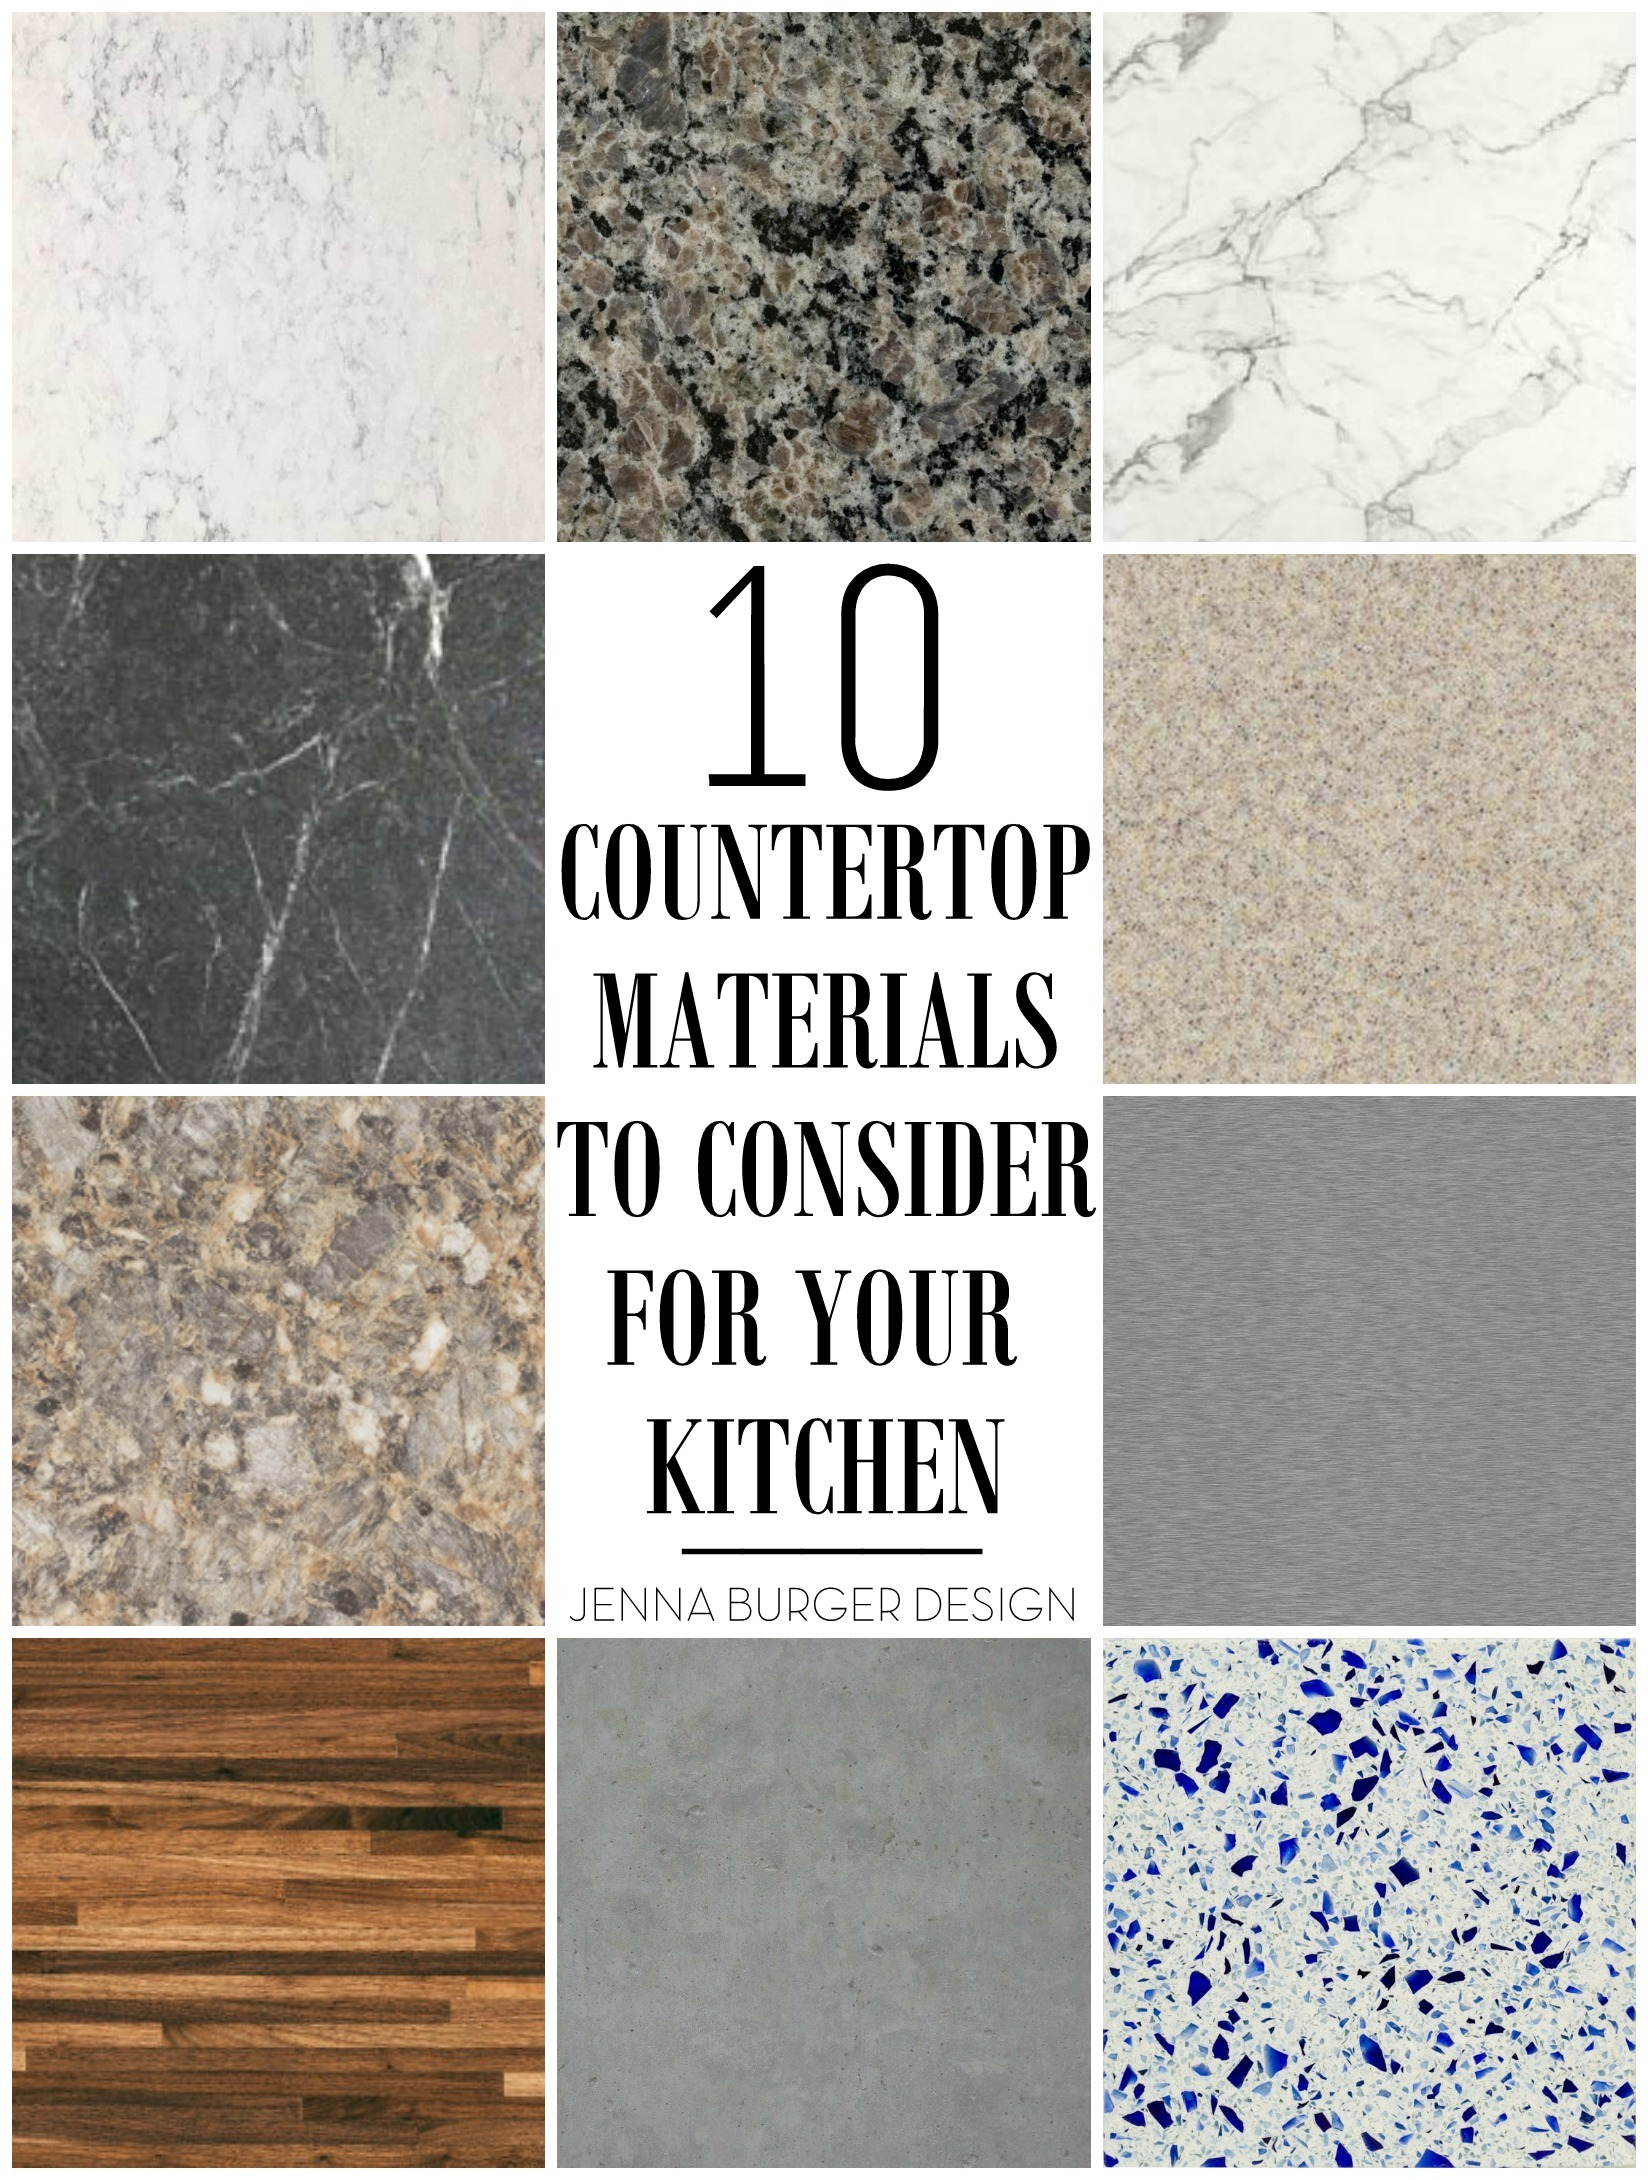 Marvelous 10 Countertop Materials To Consider For The Kitchen Jenna Complete Home Design Collection Lindsey Bellcom